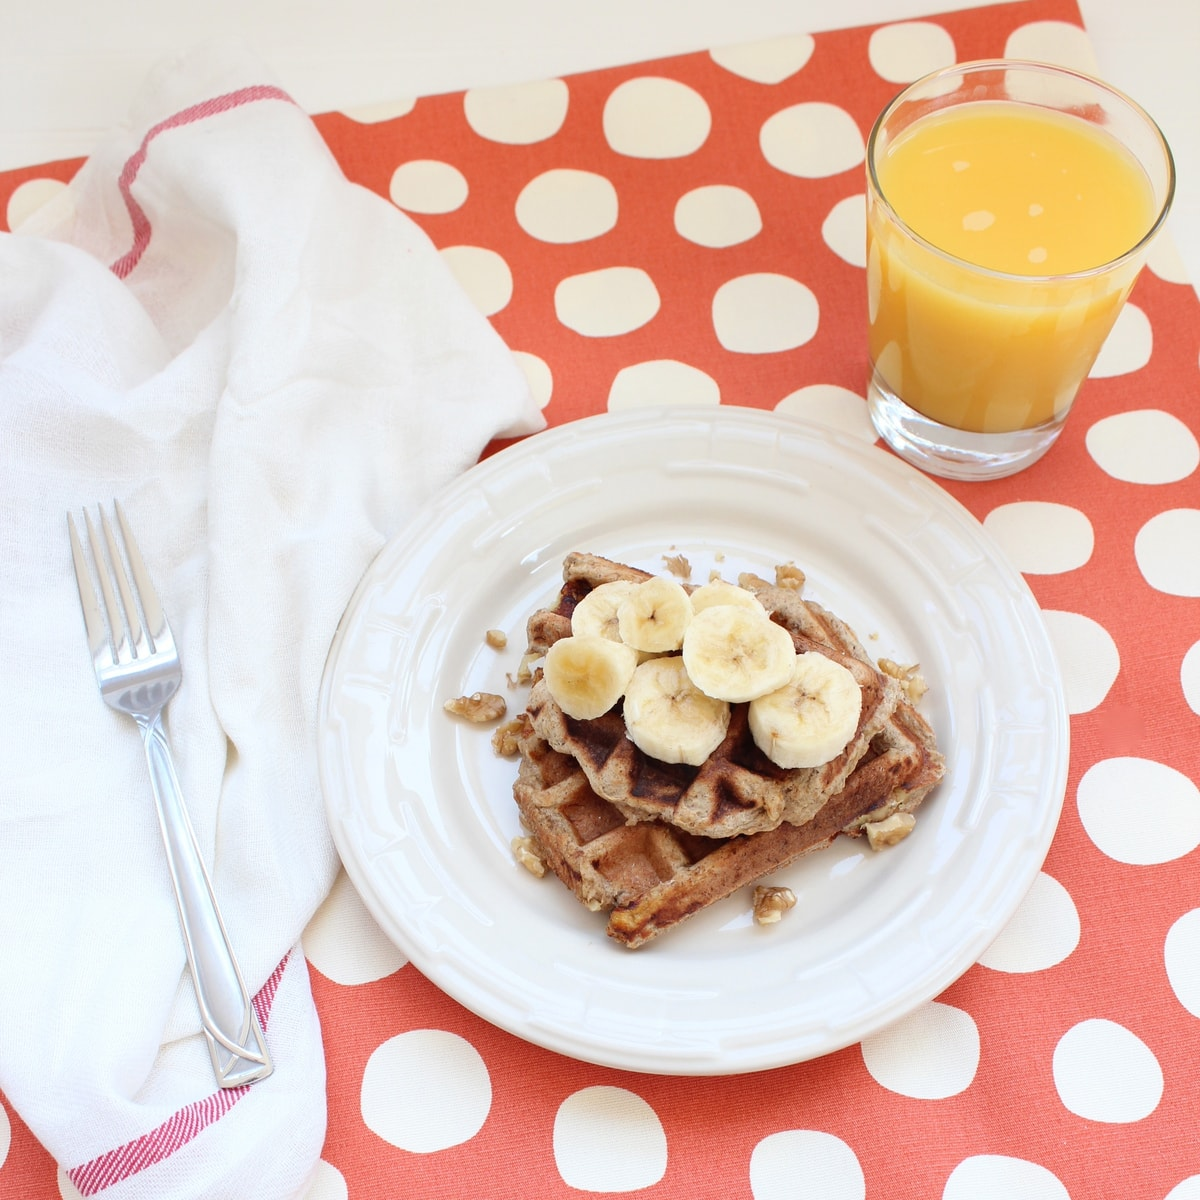 These delicious gluten free banana walnut waffles are also dairy free ...